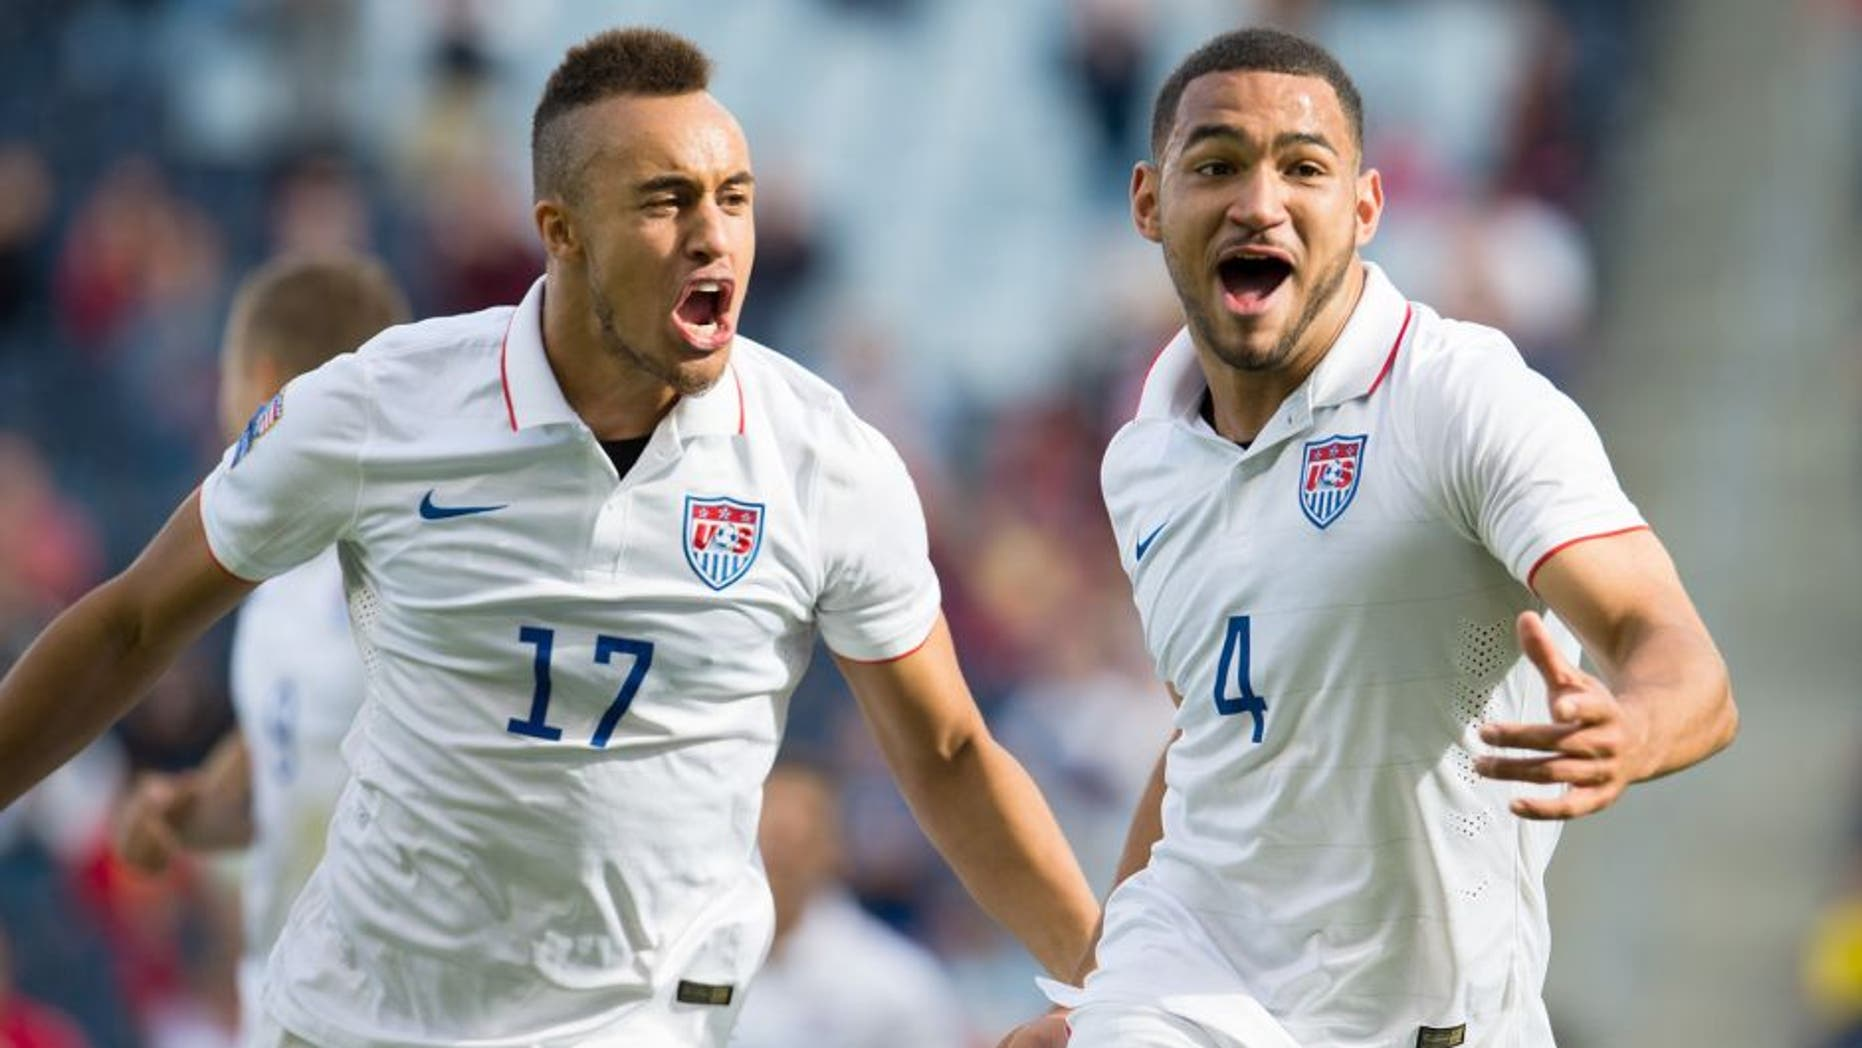 Action photo during the match Cuba vs United States, Corresponding to Group A of 2015 CONCACAF Mens Olympic Qualifying Championship at Sporting Park Stadium, in the photo: Cameron Carter-Vickers celebrates his goal with Jordan Morris and Jerome Kiesewetter of United States Foto de accion durante el partido Cuba vs Estados Unidos, Correspondiente al Grupo B del Campeonato Preolimpico-Hombres de la CONCACAF 2015 en el Estadio Sporting Park, en la foto: Cameron Carter-Vickers celebra su gol con Jordan Morris y Jerome Kiesewetter de Estados Unidos 03/10/2015/MEXSPORT/Jorge Martinez.